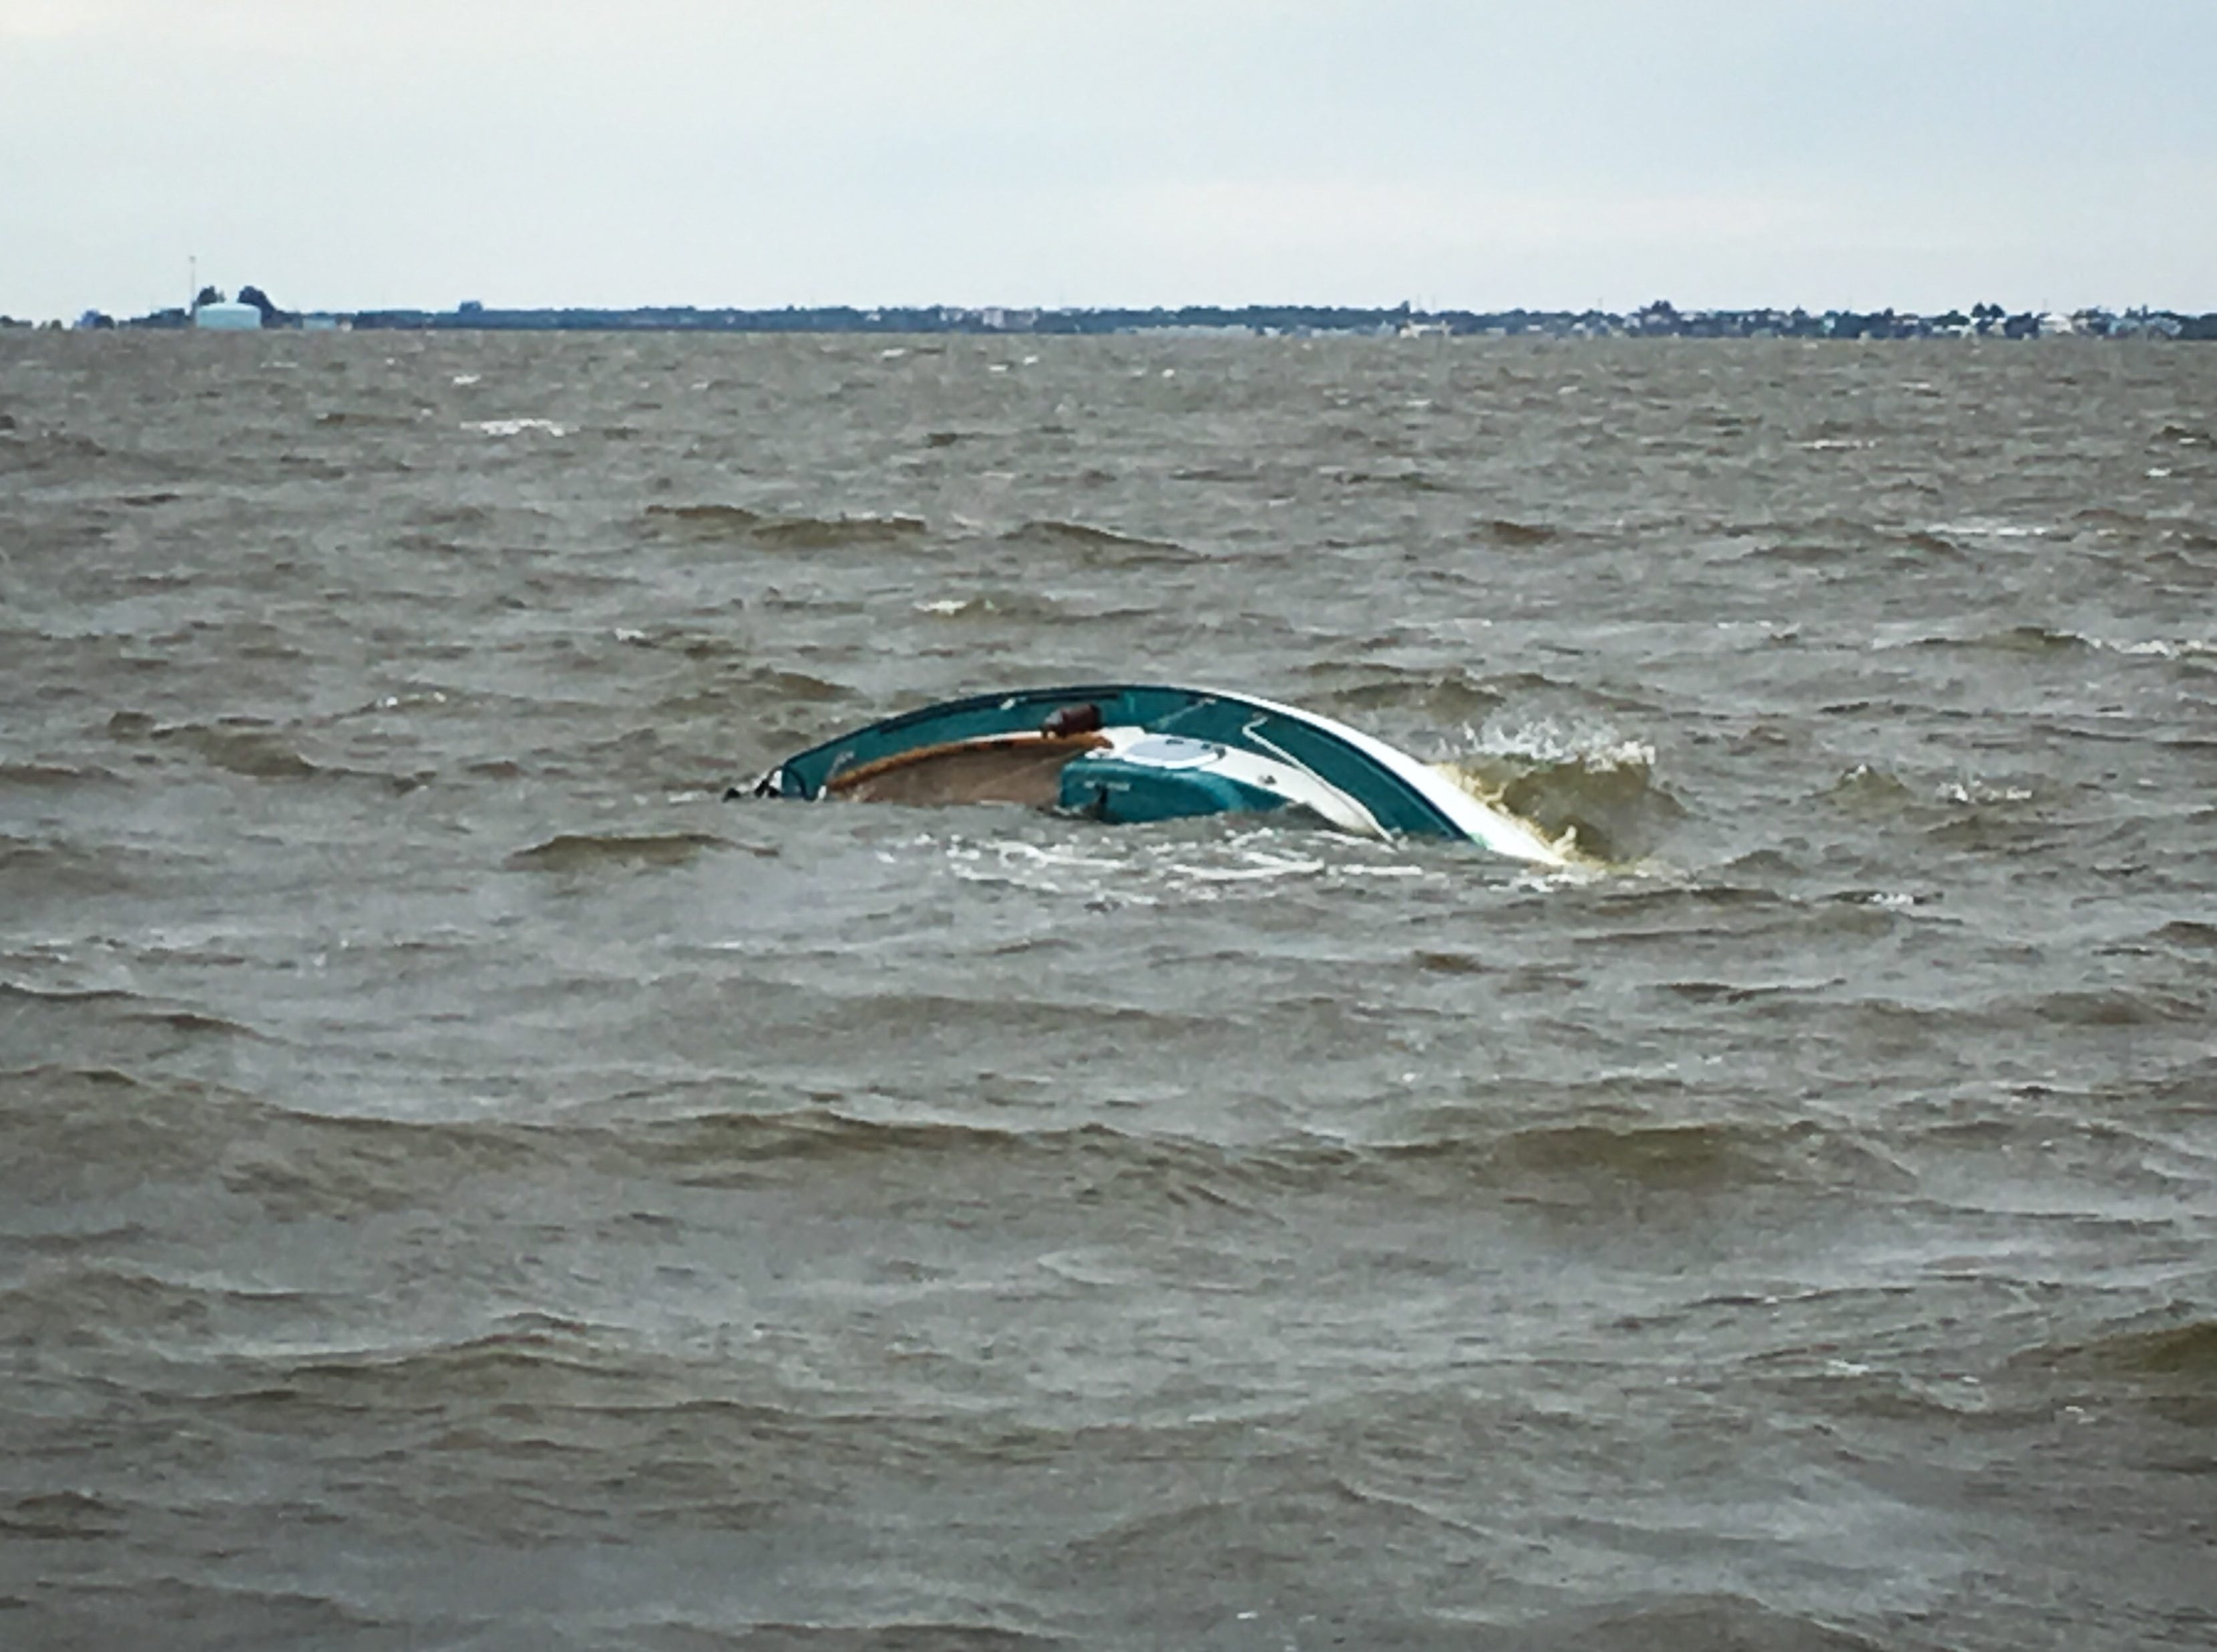 The boat  flipped over and partially bobbed just above the choppy waves of the river.